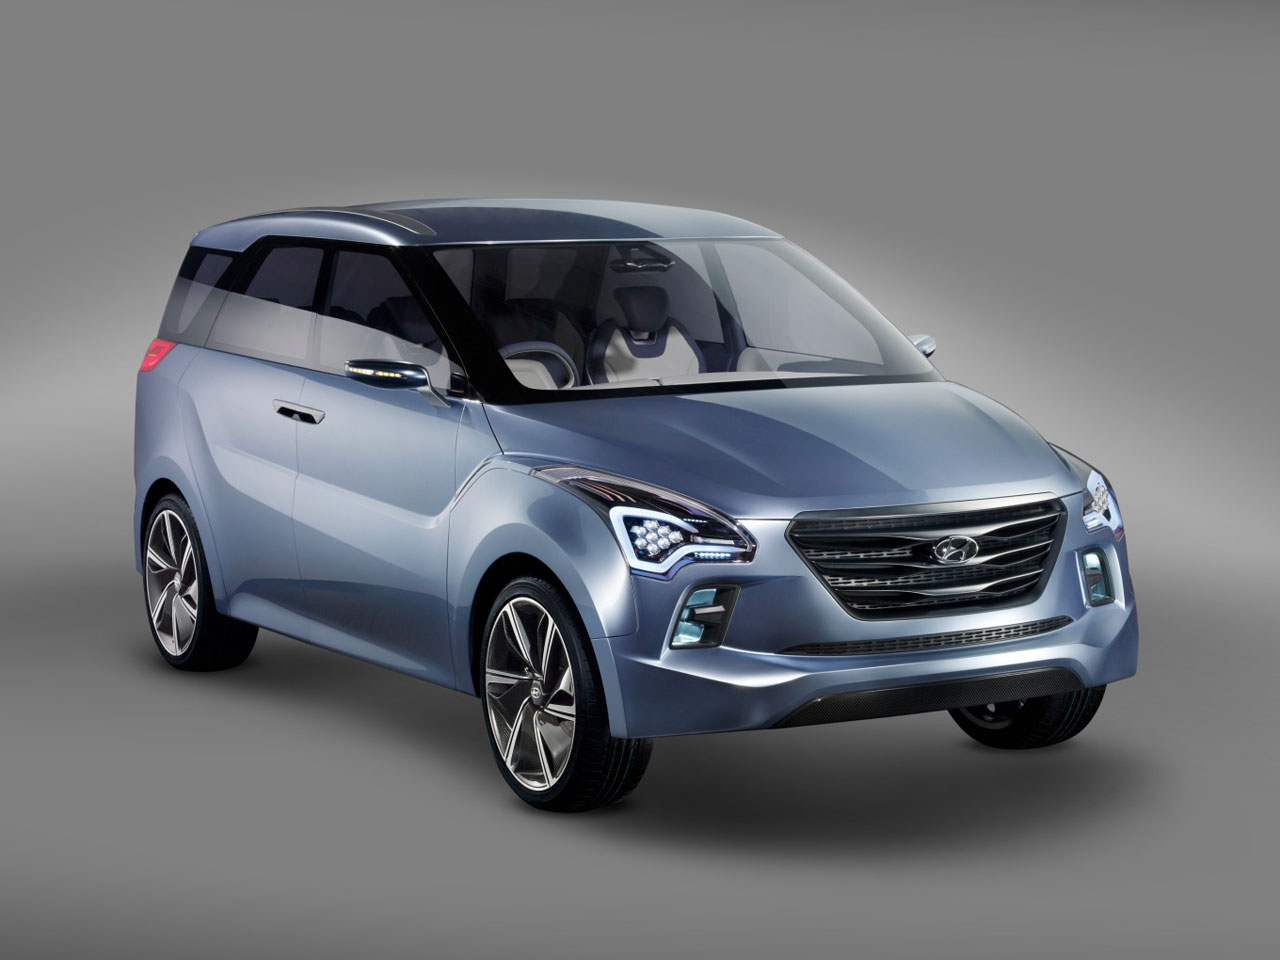 hyundai hexaspace concept - india car news